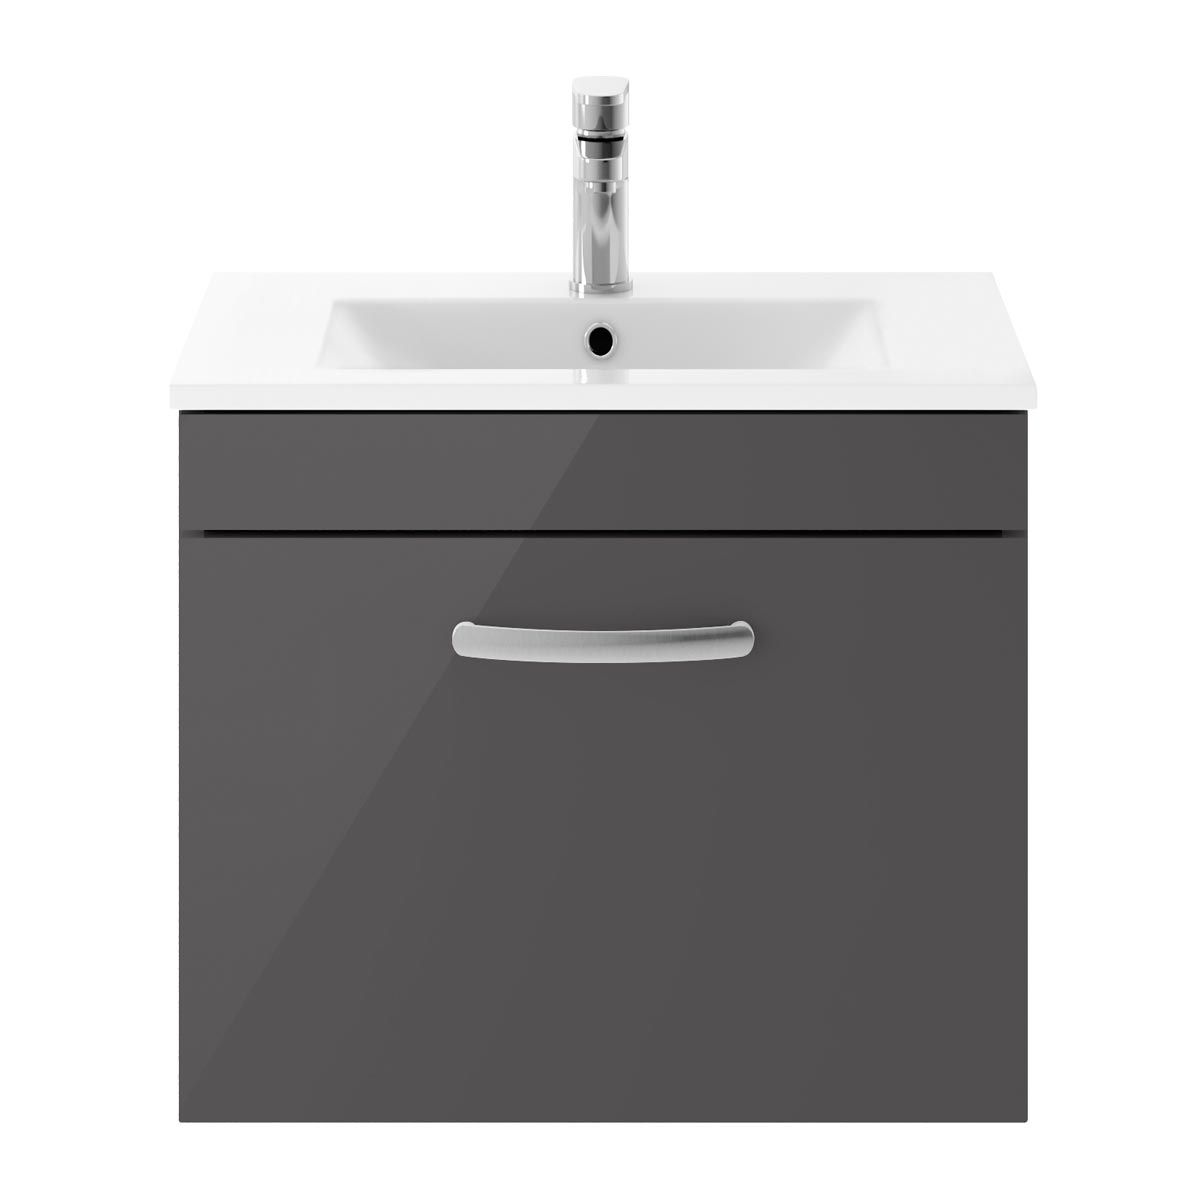 Nuie Athena Gloss Grey 1 Drawer Wall Hung Vanity Unit with 18mm Profile Basin 600mm